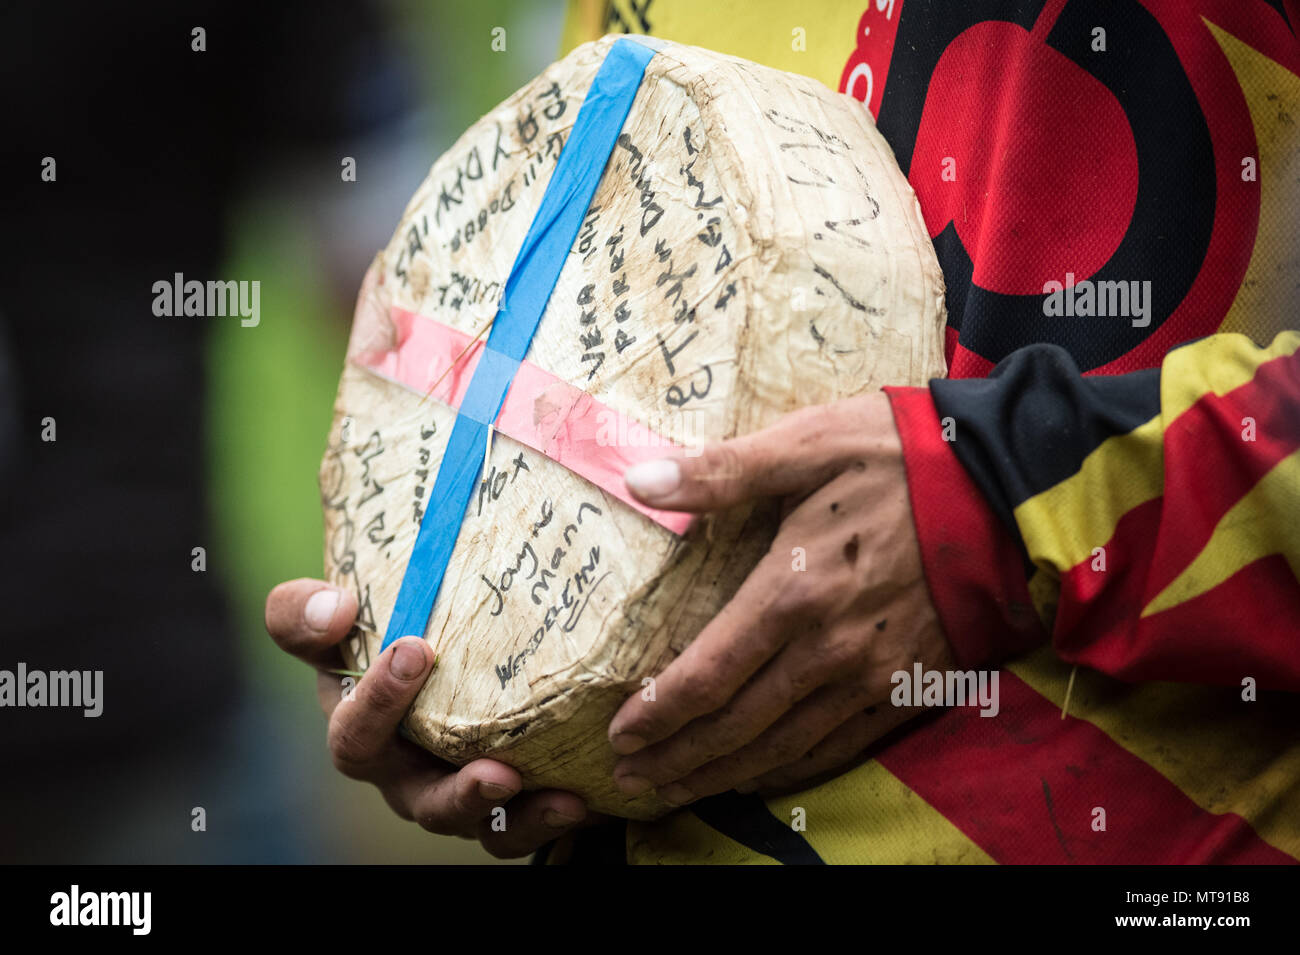 Gloucester, UK. 28th May 2018. Annual Cheese Roll on Coopers Hill. Dating back to 1800s, the annual Cheese-Rolling and Wake race involves fearless competitors chasing a 9lb (4.1KG) round of Double Gloucester cheese 200 meters down the 1:2 gradient hill. The cheese is allowed a one-second head start and can reach speeds up to 70mph. There are usually a number of injuries each year. Credit: Guy Corbishley/Alamy Live News - Stock Image